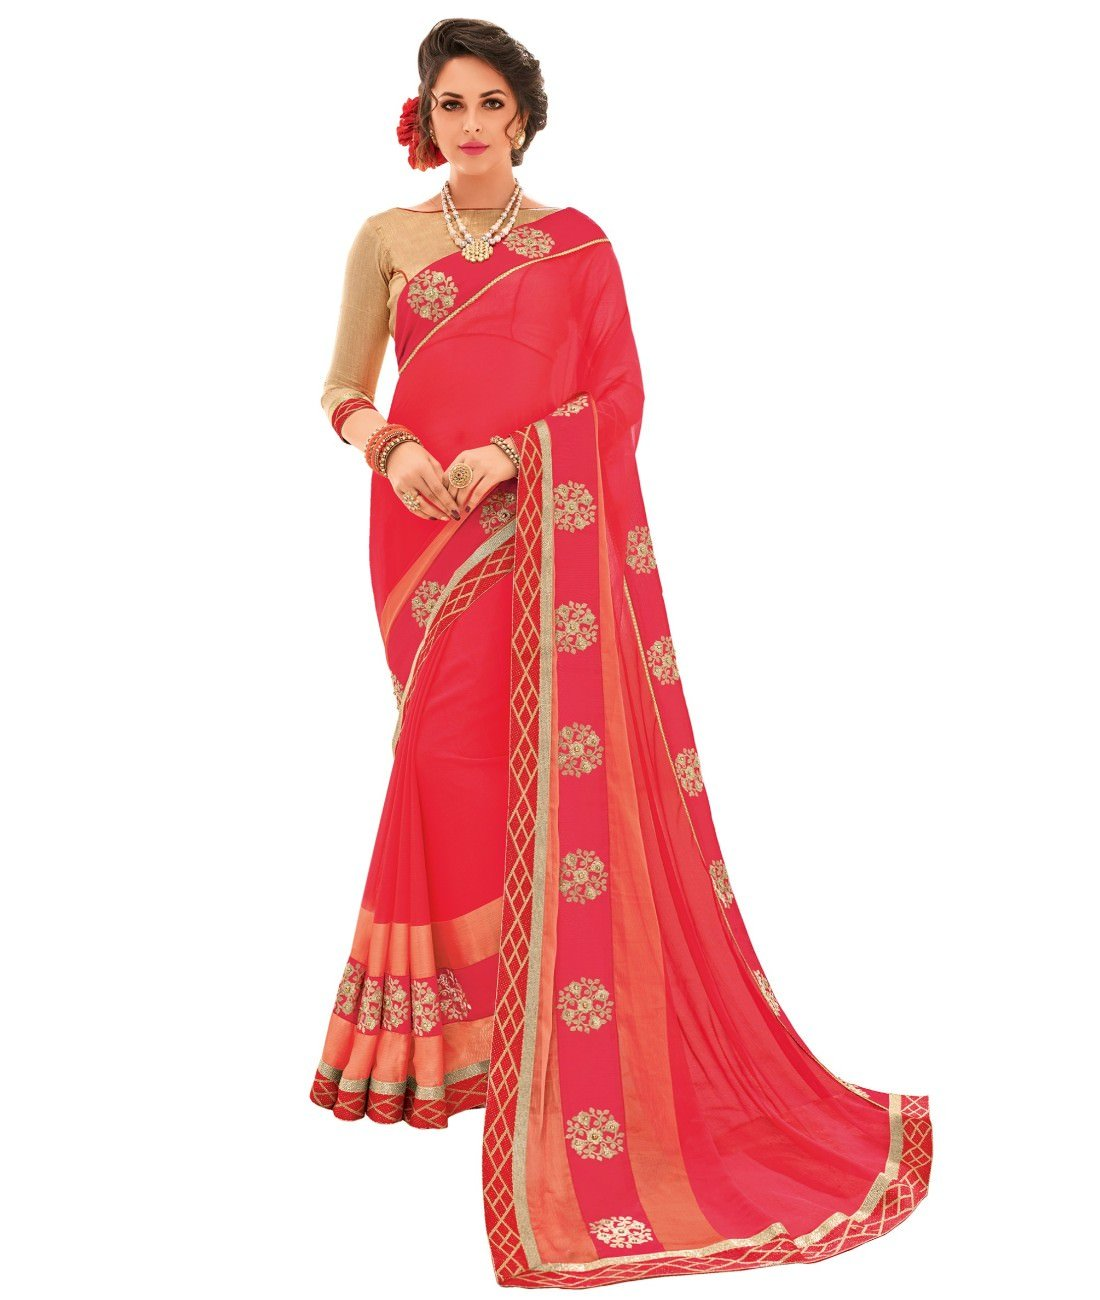 ffb876e065 Rangat Pink Colored Two Tone Chiffon Embroidered With Border Work Saree